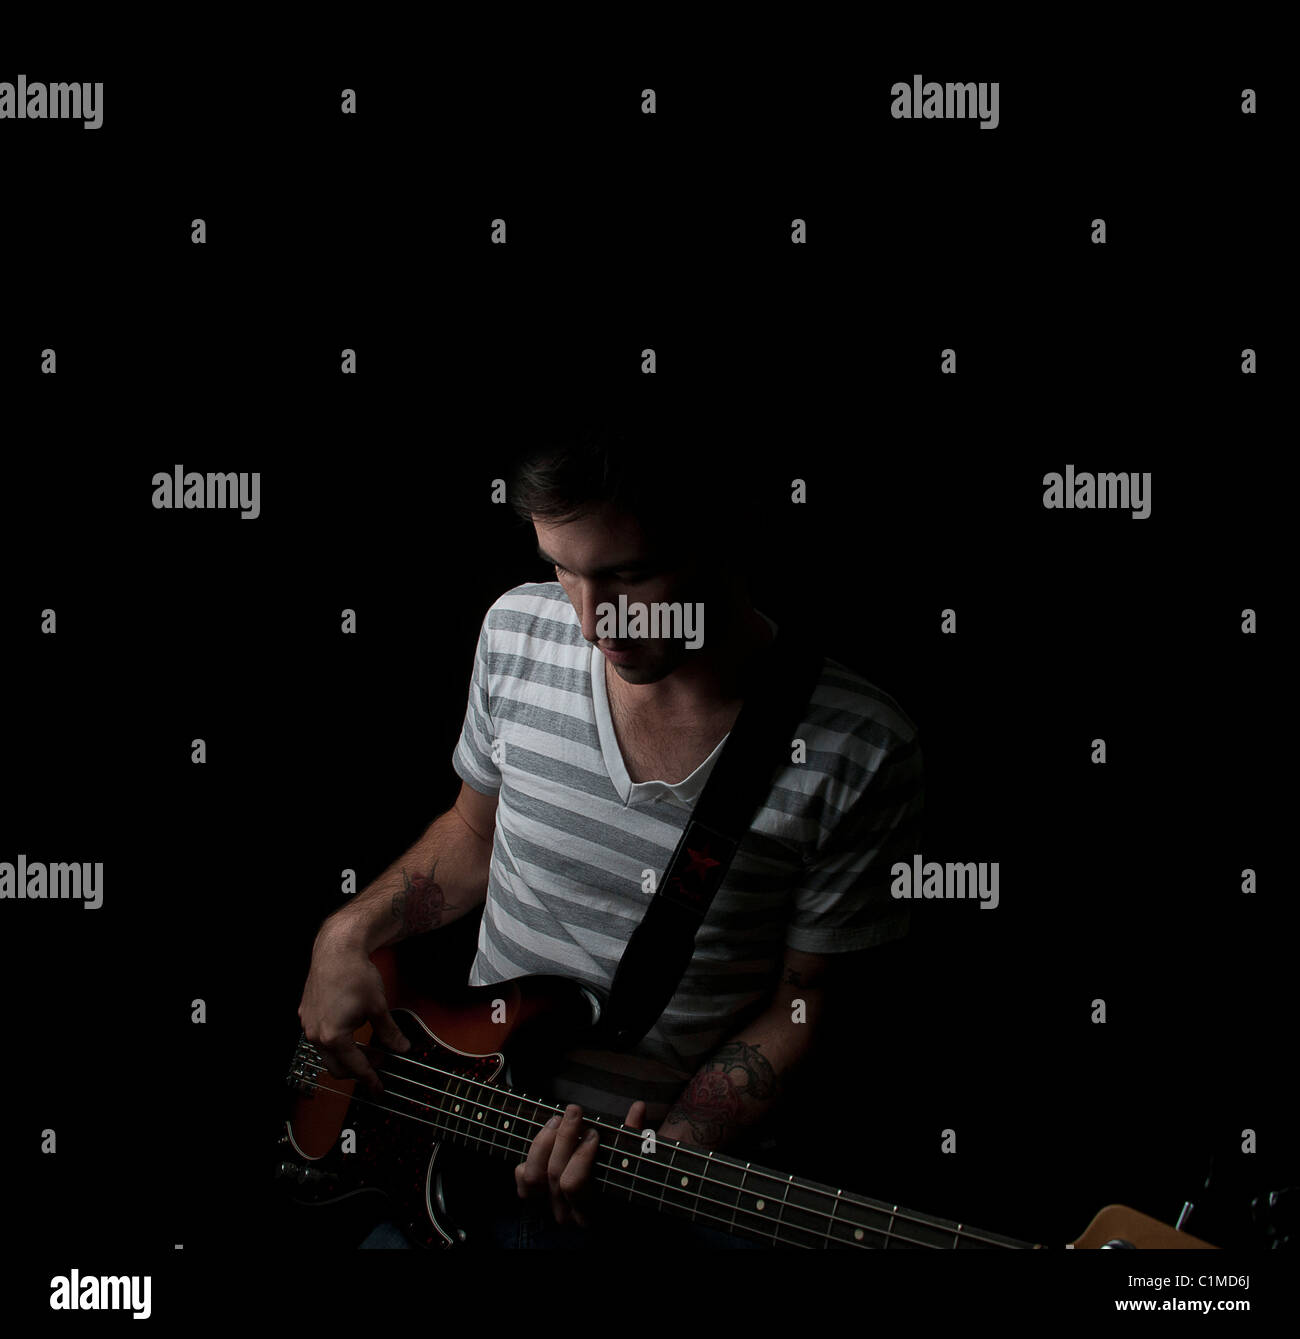 Fingerless gloves for guitarists - Man Playing Bass Guitar Stock Image